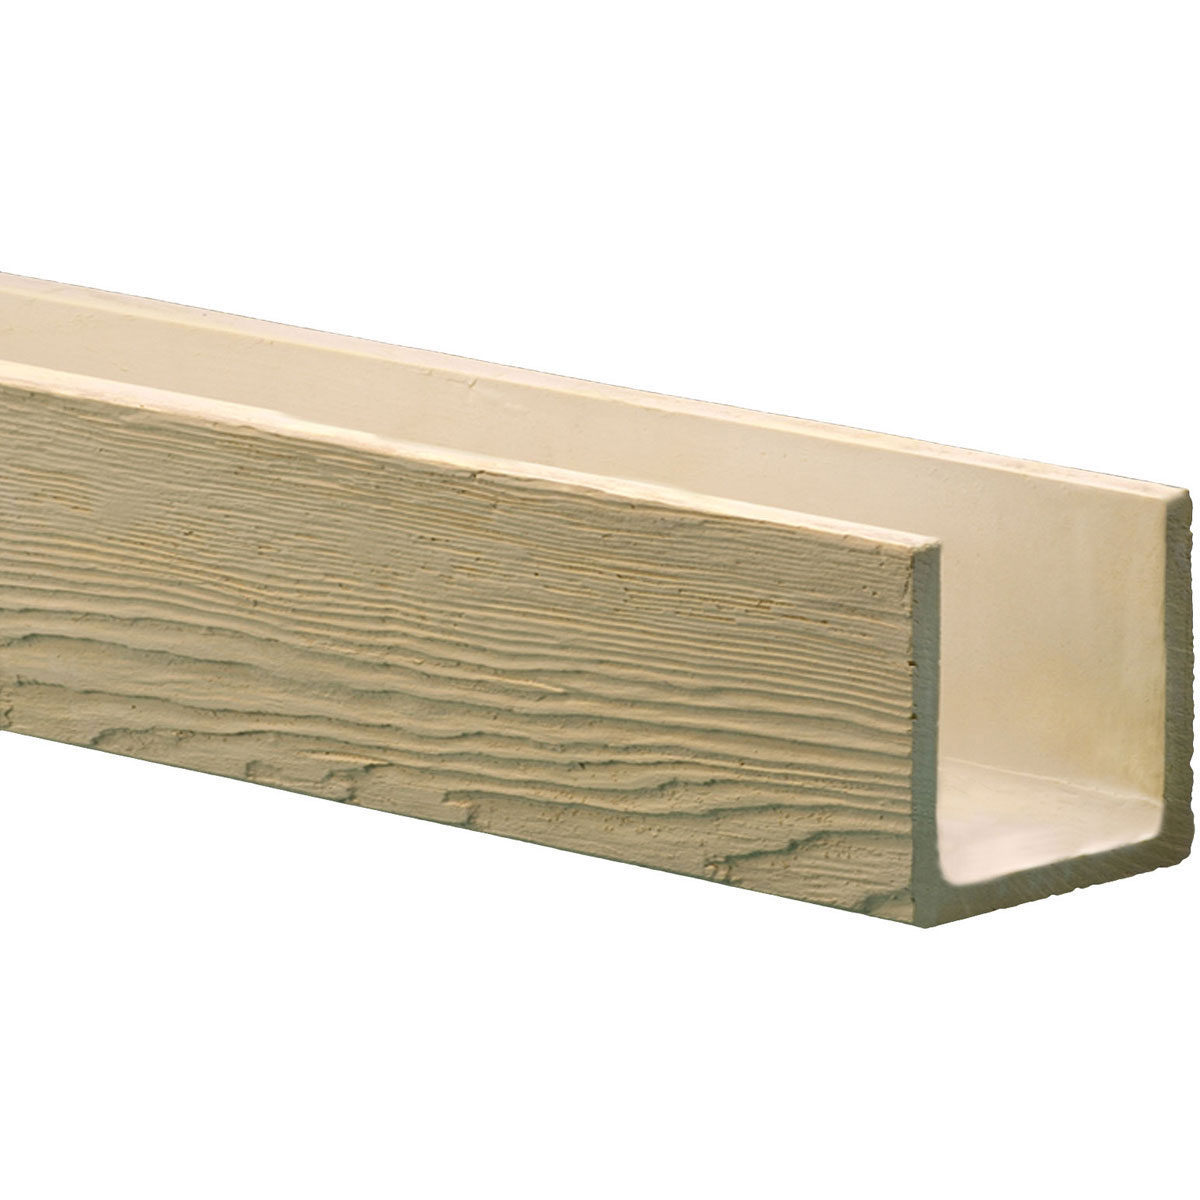 Fypon ltd bmm4x6x120rdw 3 1 2 inch w x 5 1 2 inch h x 120 for Fypon wood beams